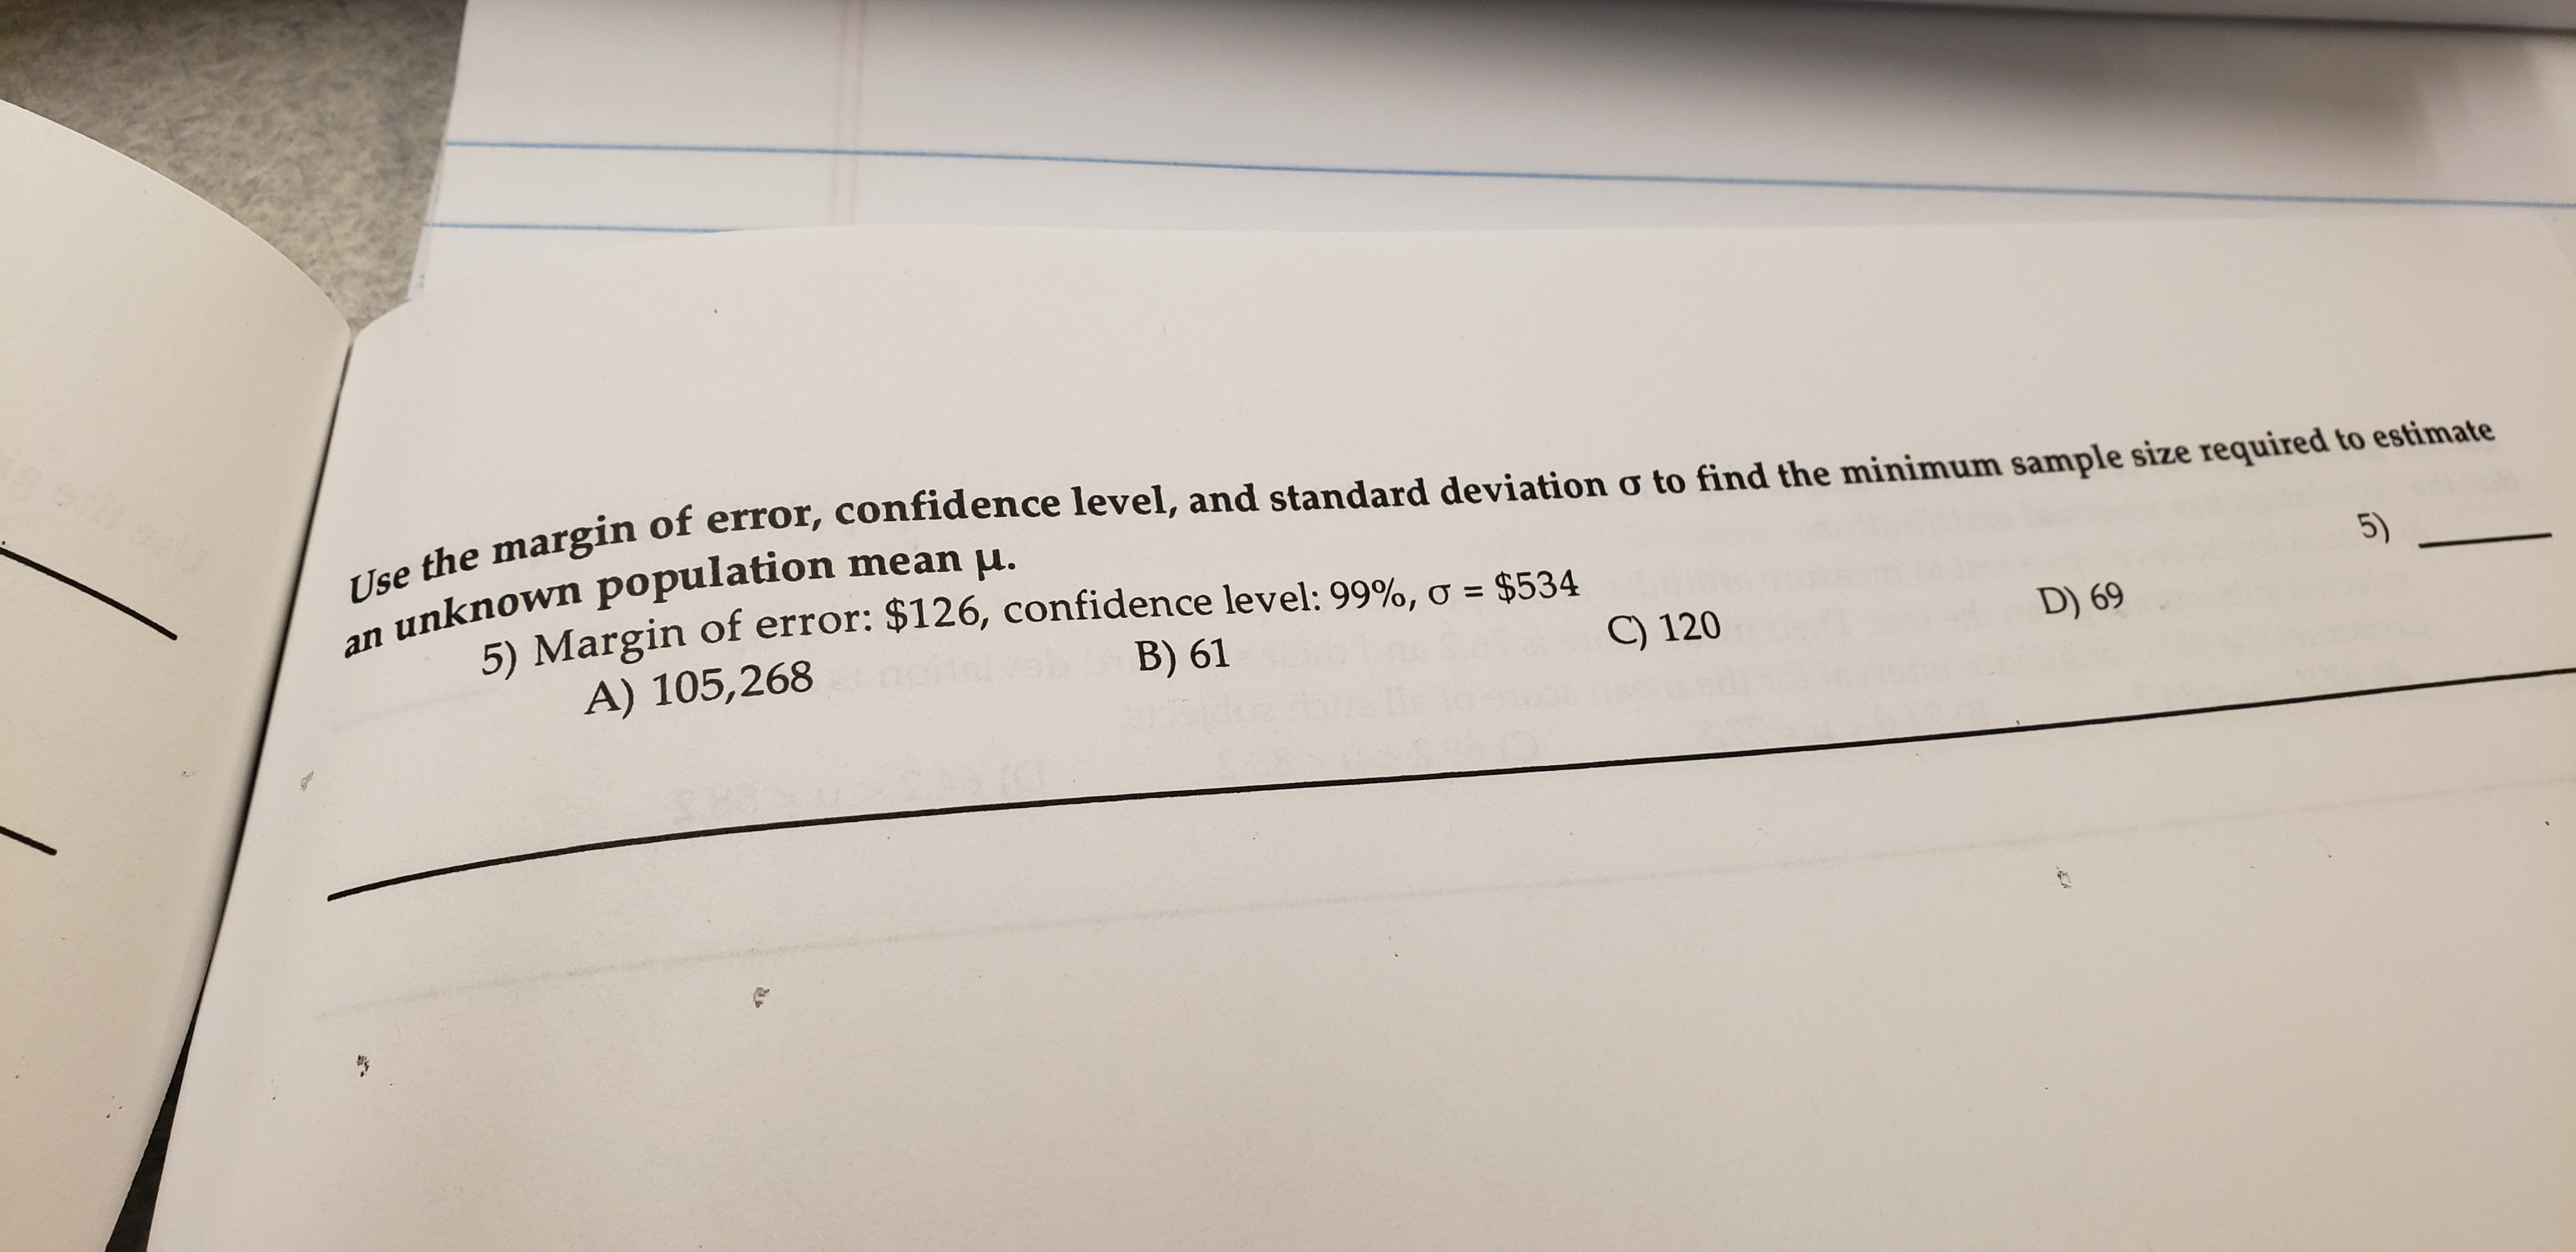 Use the margin of error, confidence level, and standard deviation o to find the minimum sample size required to estimate unknown population mean u. 5) Margin of error: $126, confidence level: 99%, o $534 A) 105,268 an B) 61 C) 120 5) D) 69